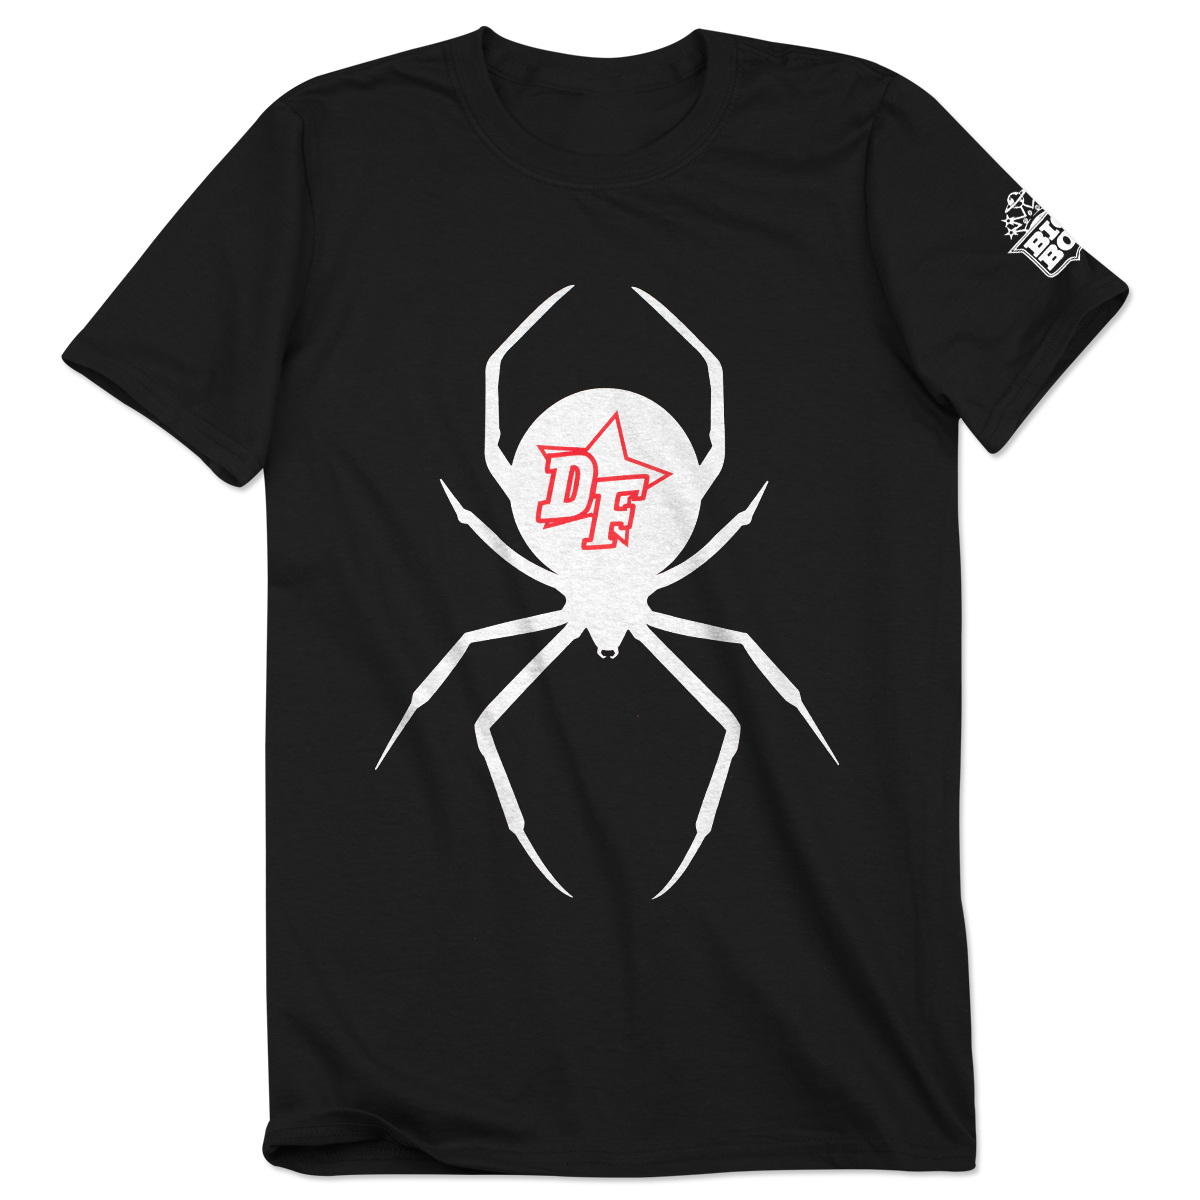 DF SPIDER T-SHIRT